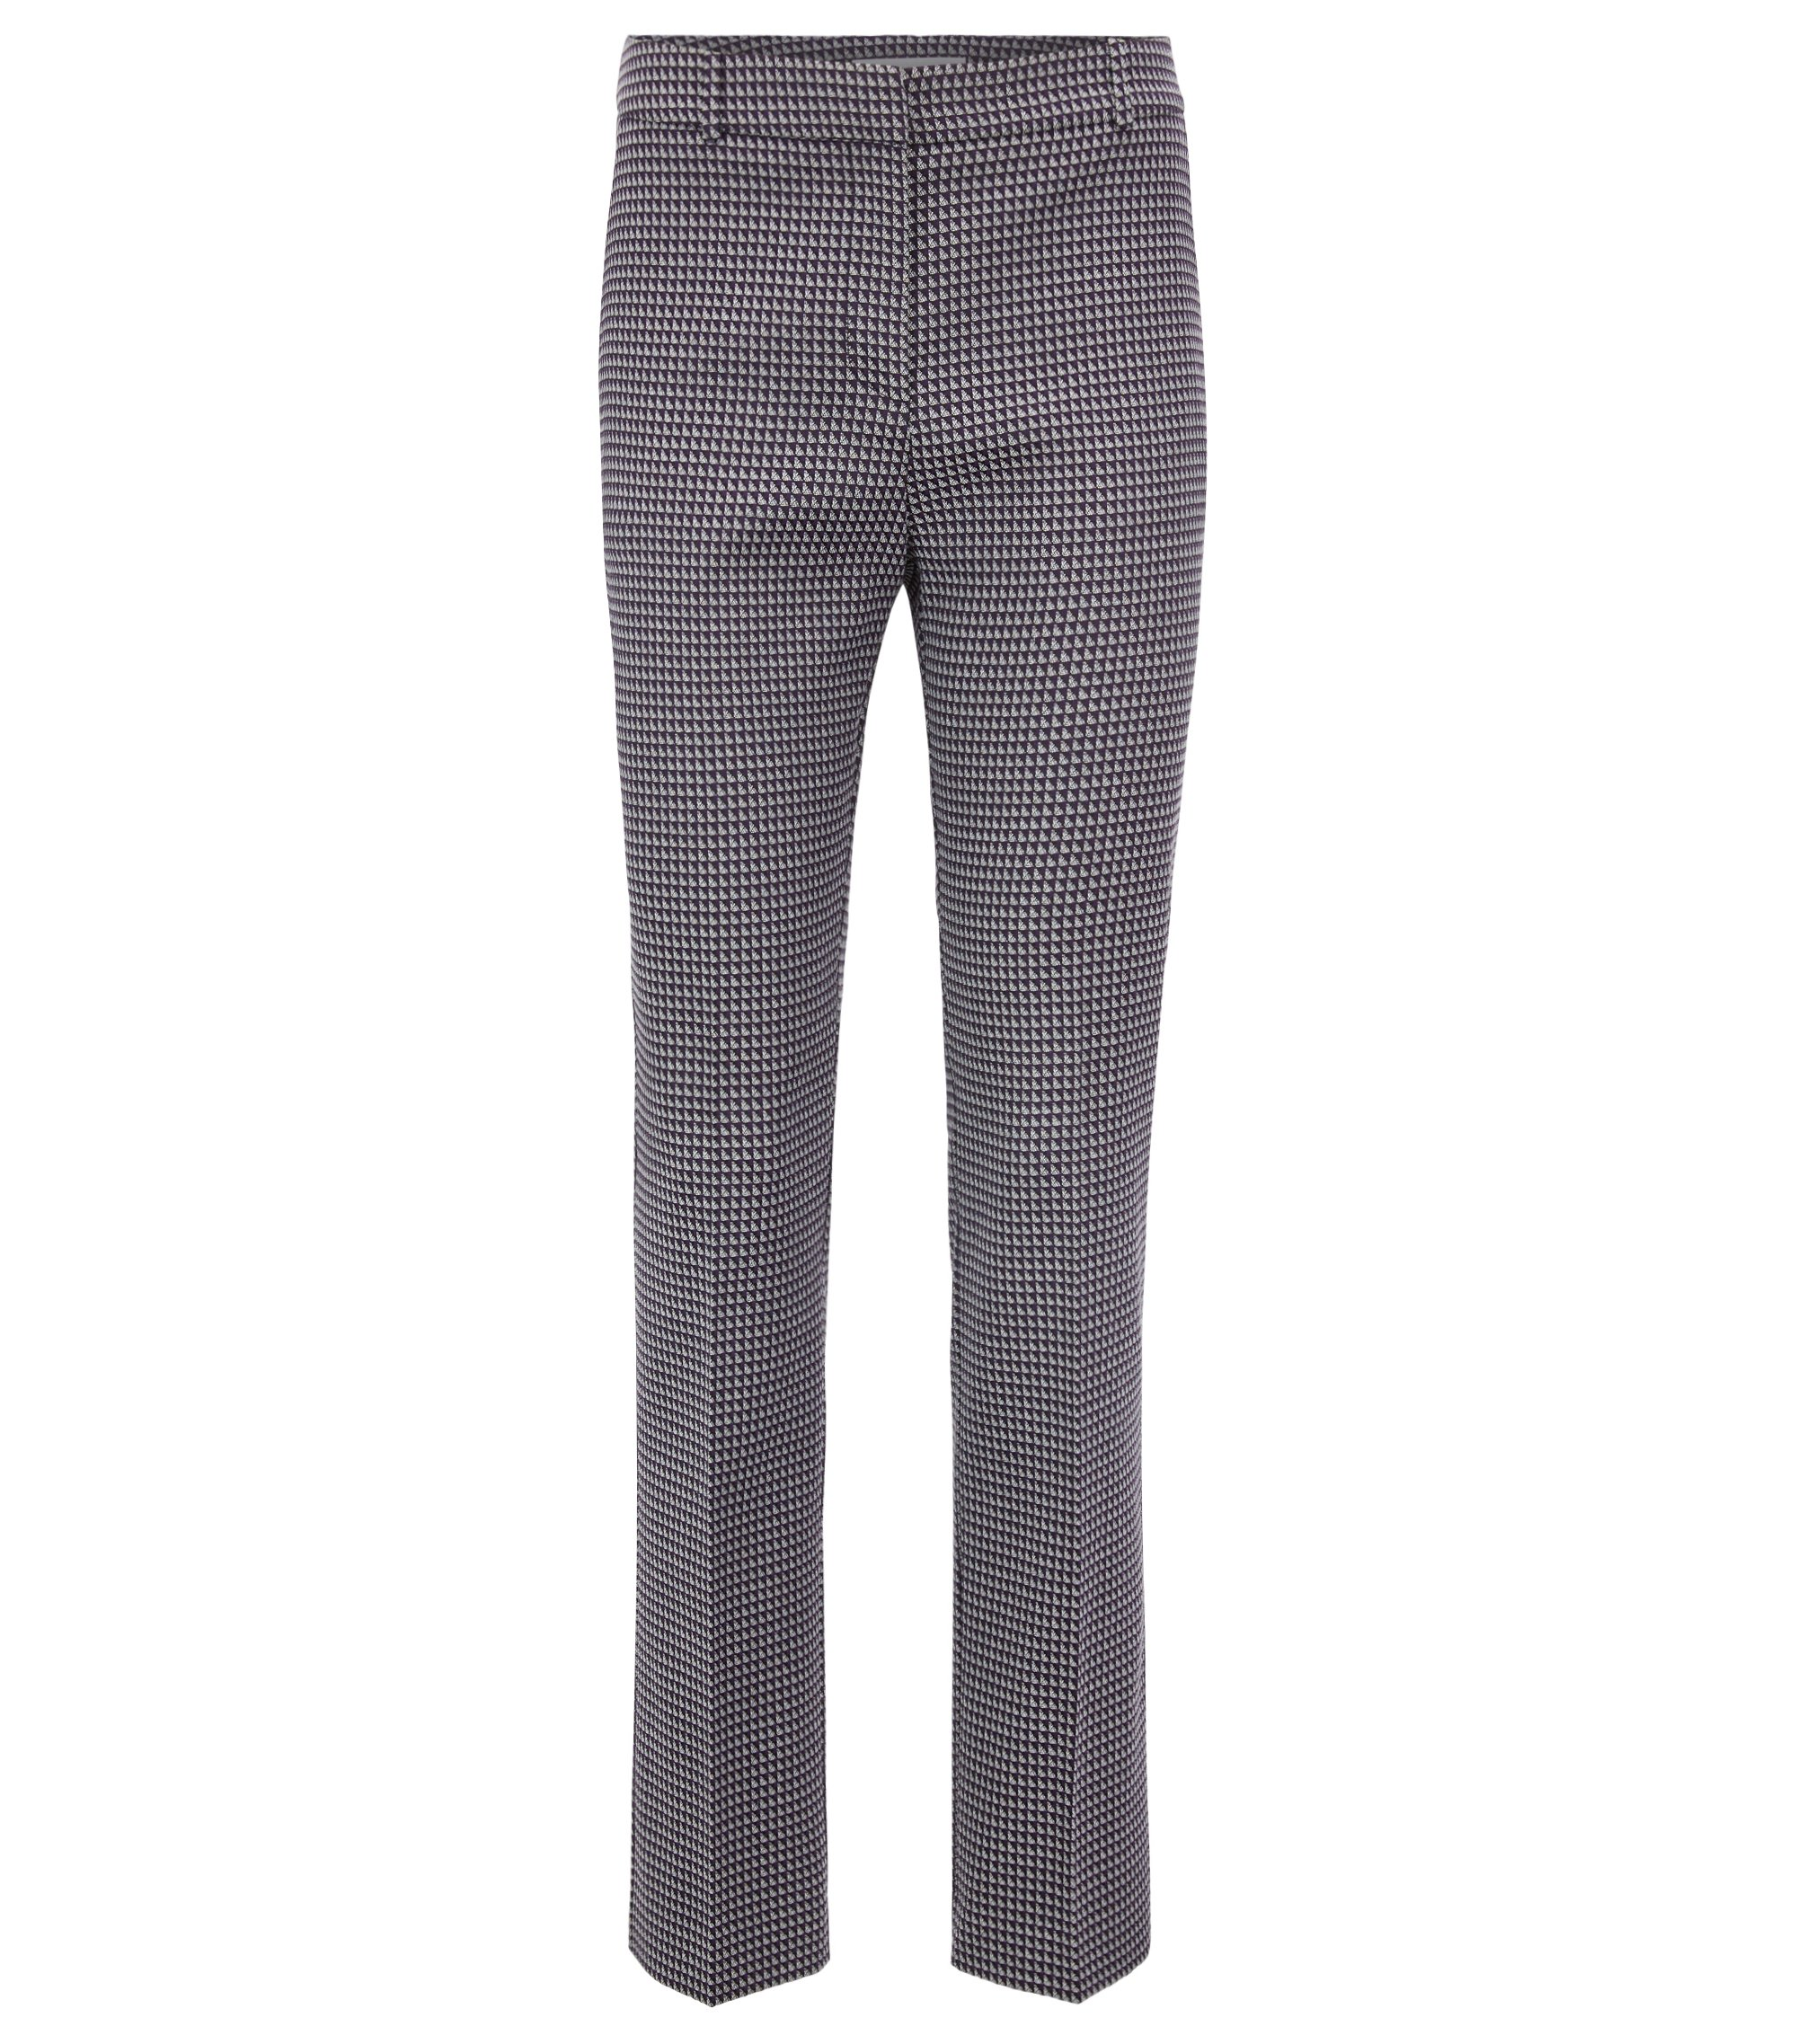 Regular-fit pantalon in een jacquard van een katoenmix met stretch, Bedrukt